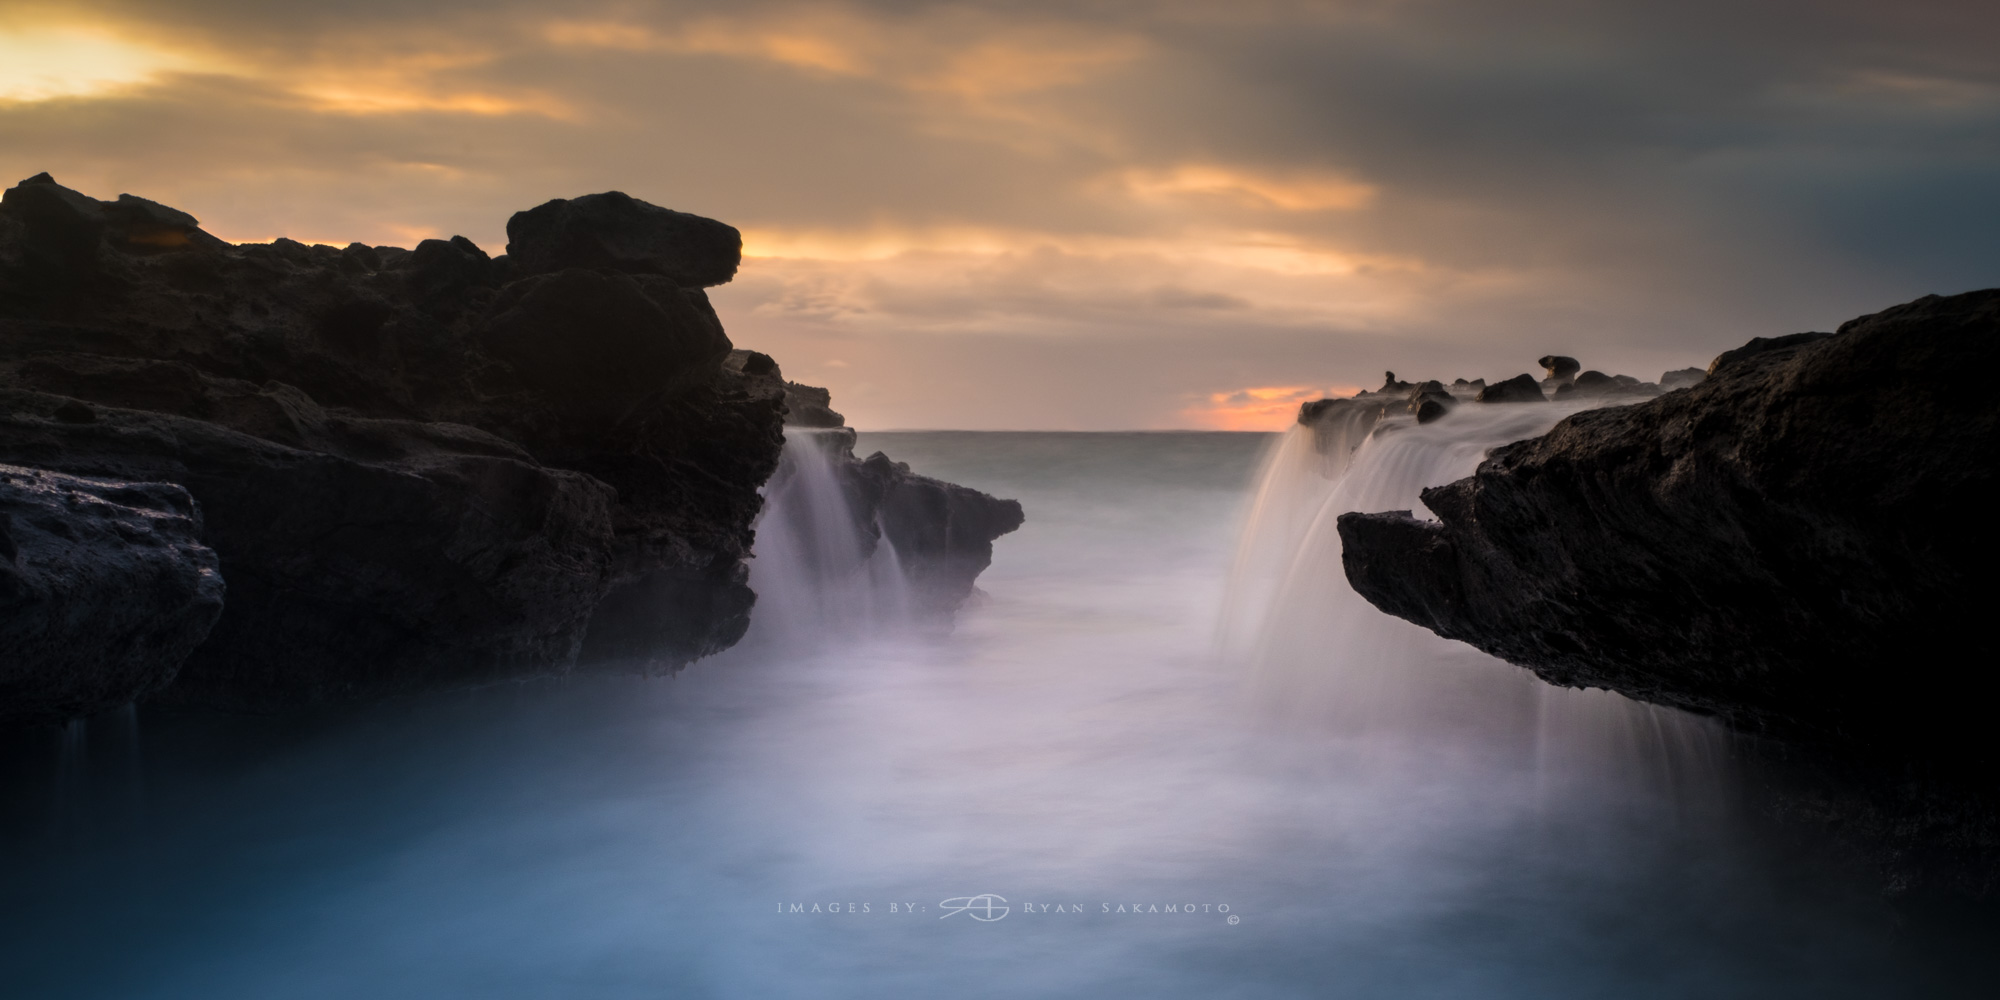 Sandy Beach Sunrise  Lee Filter Little Stopper & 3 stop soft grad  Fuji XT2  |  8 sec. |  f/9 |  ISO 200  |    XF16-55mm f/2.8 R LM WR  Edited in Lightroom & Photoshop CC 2017  Copyright 2016 Ryan Sakamoto, All rights reserved